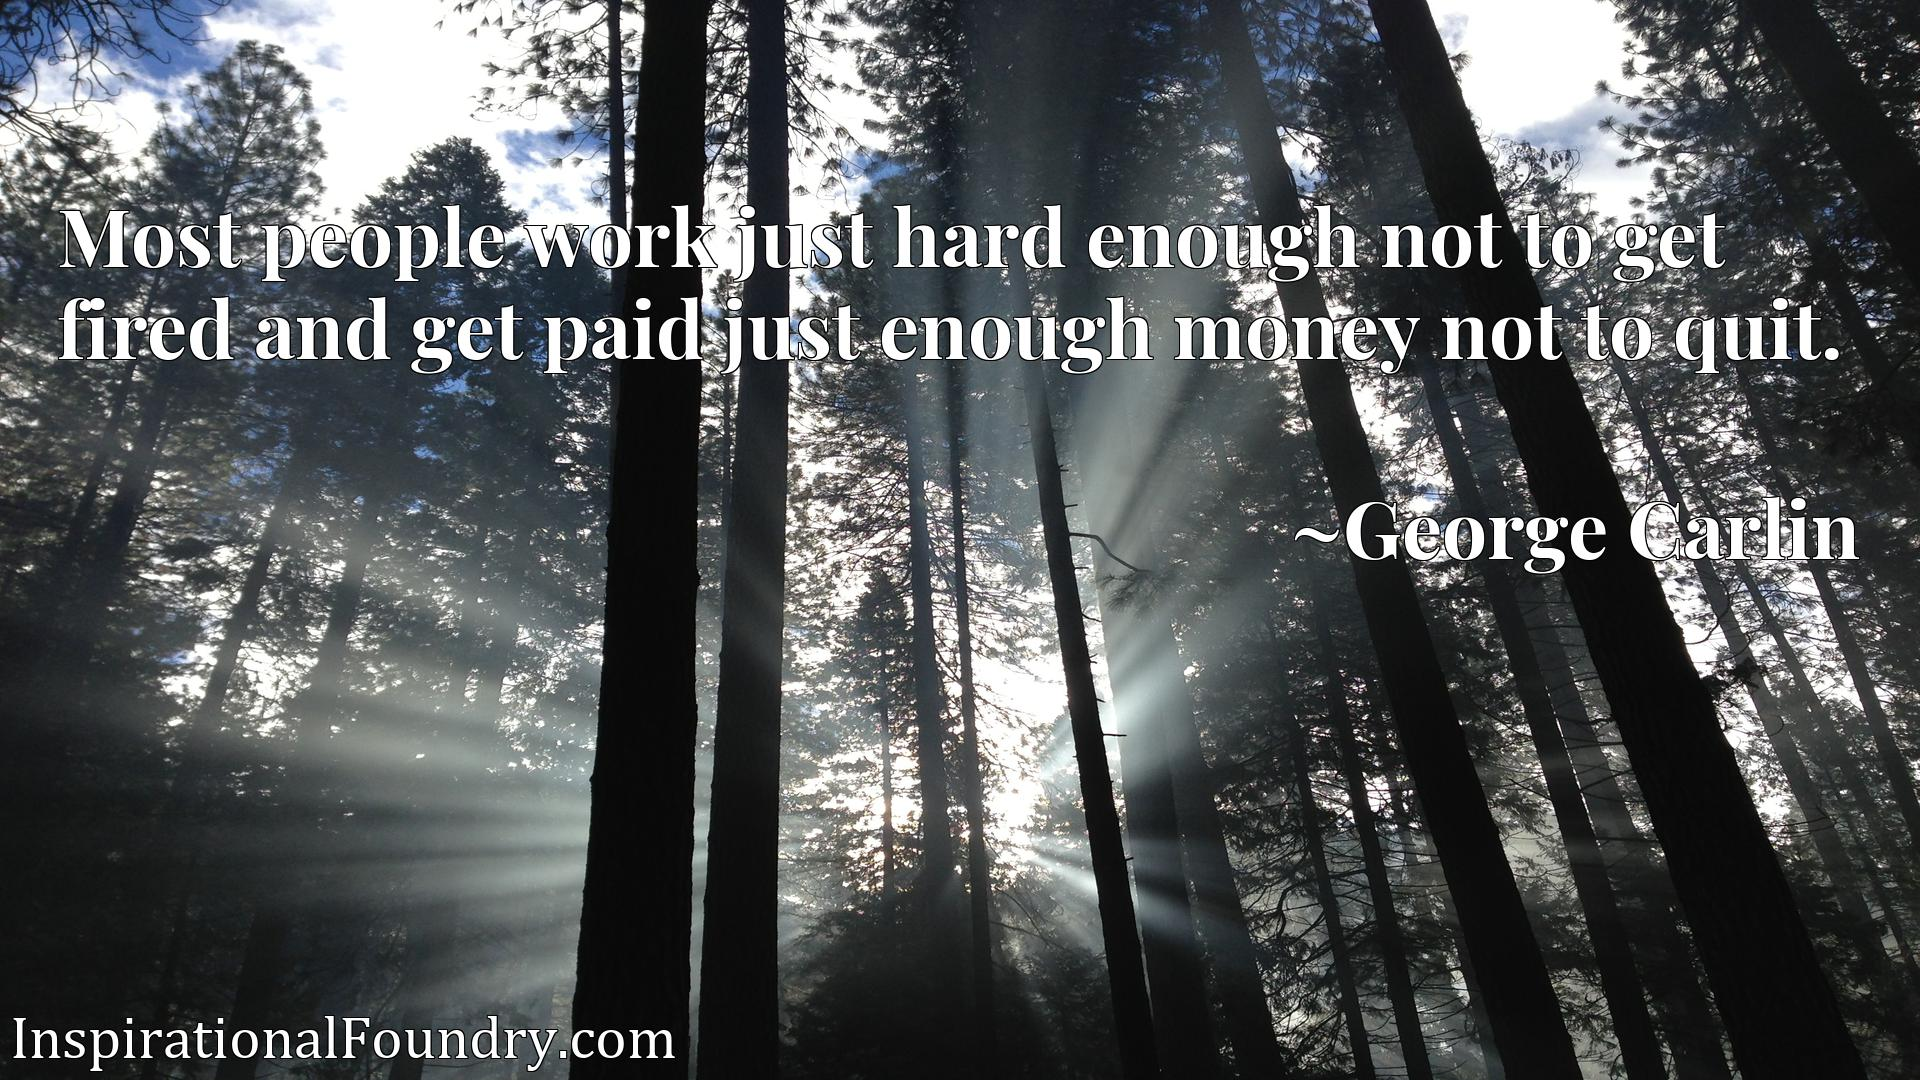 Most people work just hard enough not to get fired and get paid just enough money not to quit.